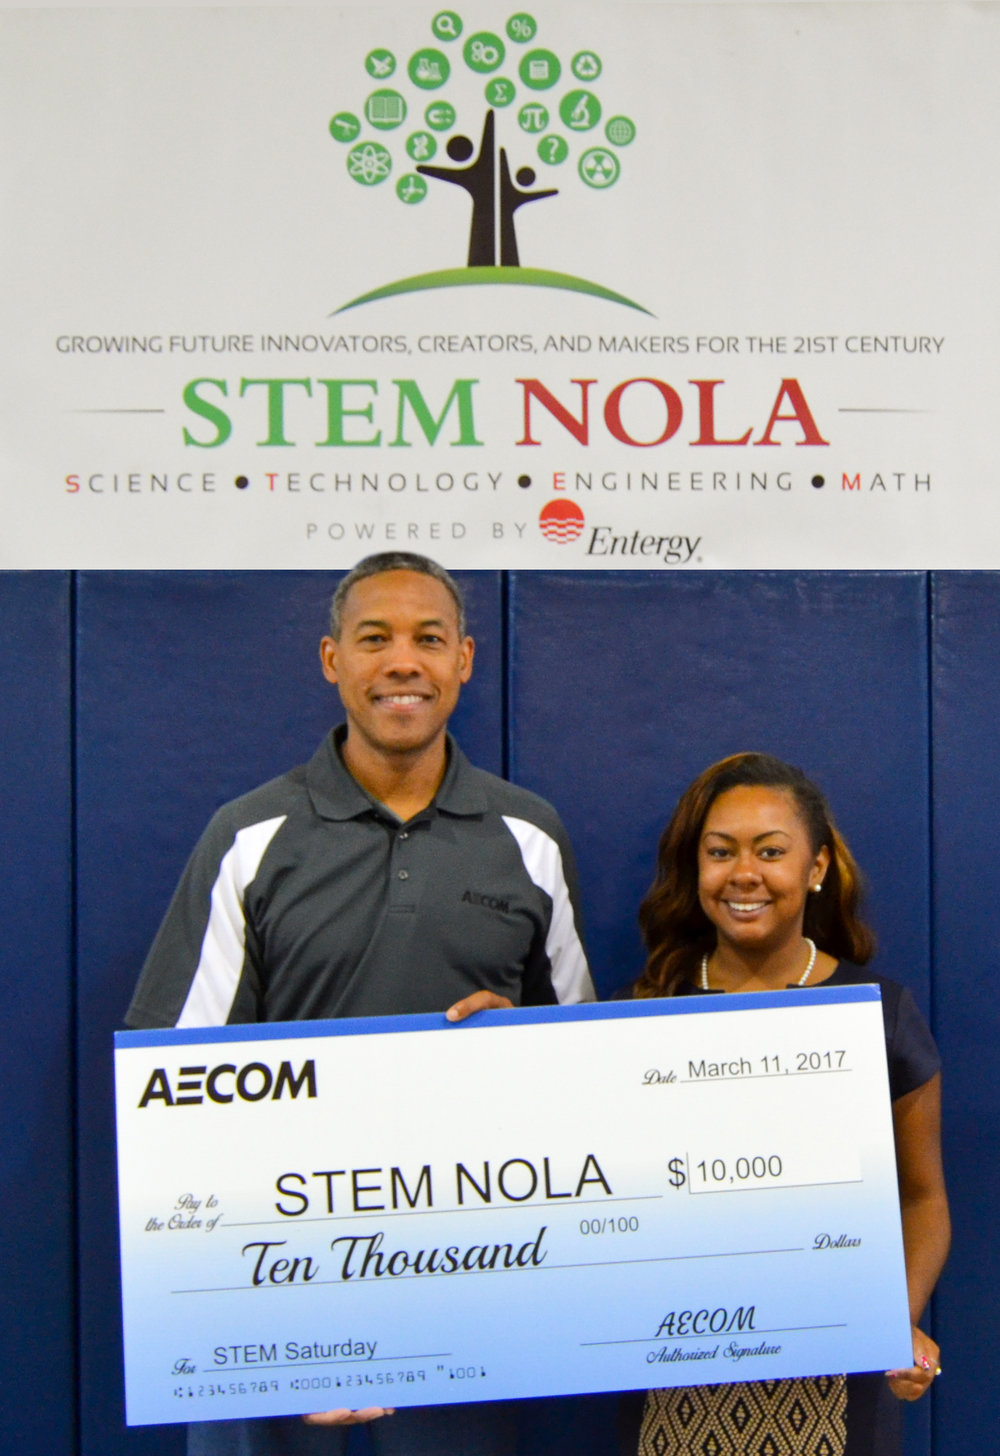 VP of AECOM Tyler Jones and I at a STEM NOLA event with the $10K check which I helped solicit from the company